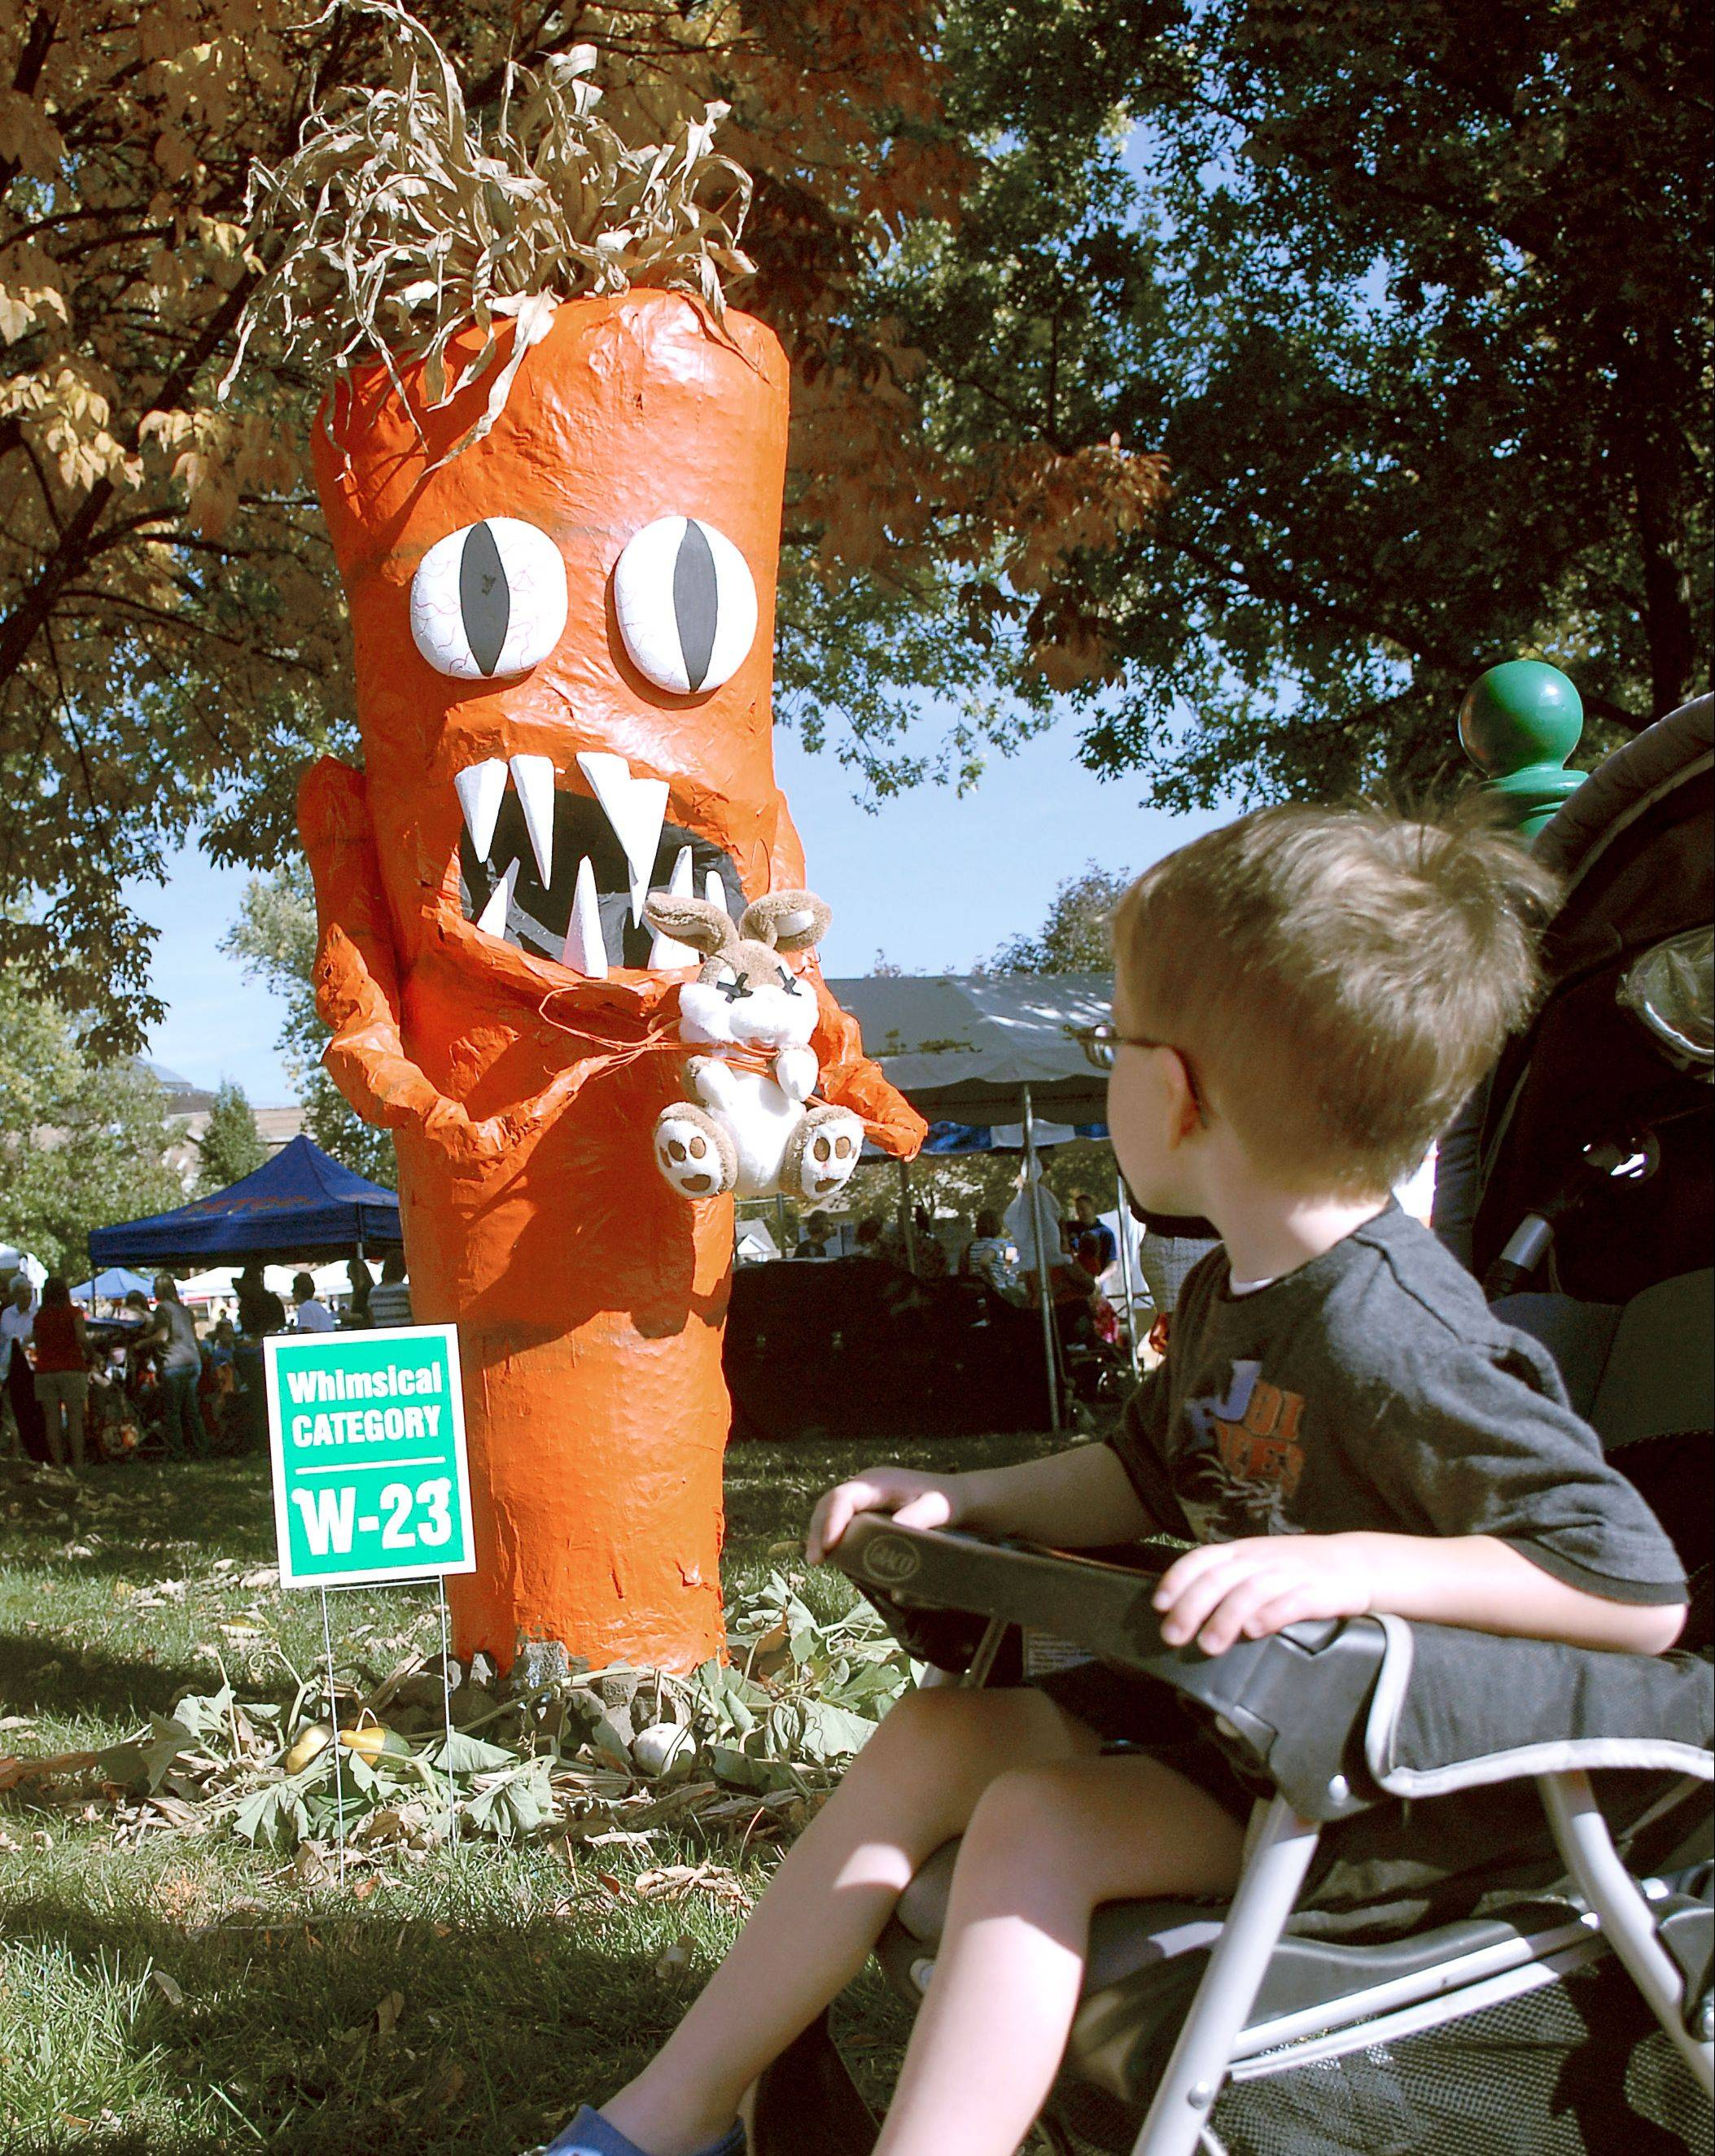 Spencer McCall, 4, of Campton Hills has a great seat while viewing entries in the whimsical category at the St. Charles Scarecrow Fest in Lincoln Park last year.